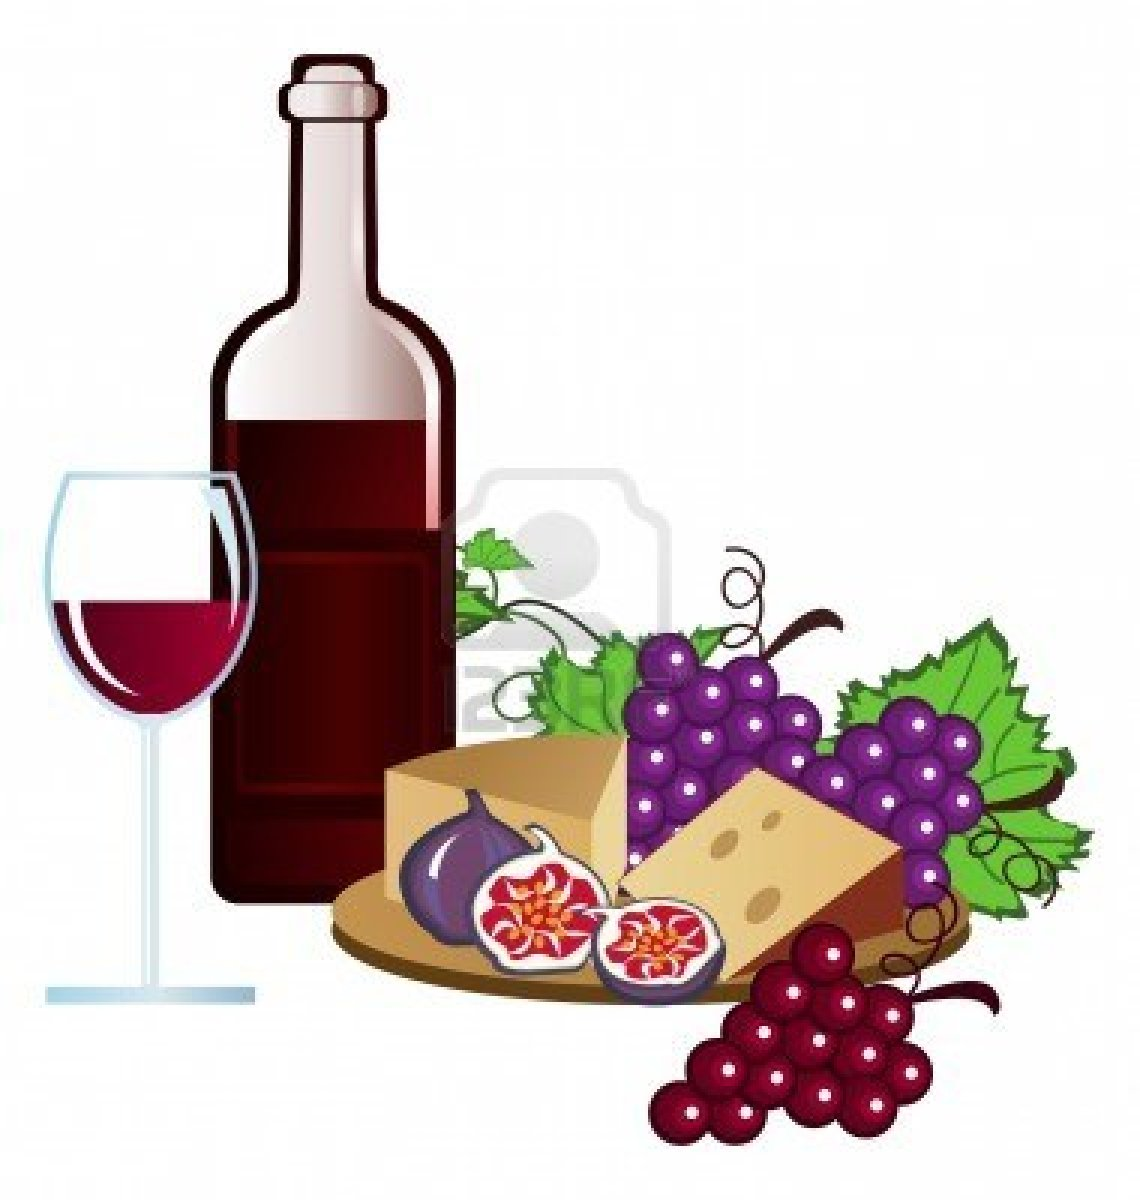 Bagged wine clipart banner download Free Grape Clipart box, Download Free Clip Art on Owips.com banner download